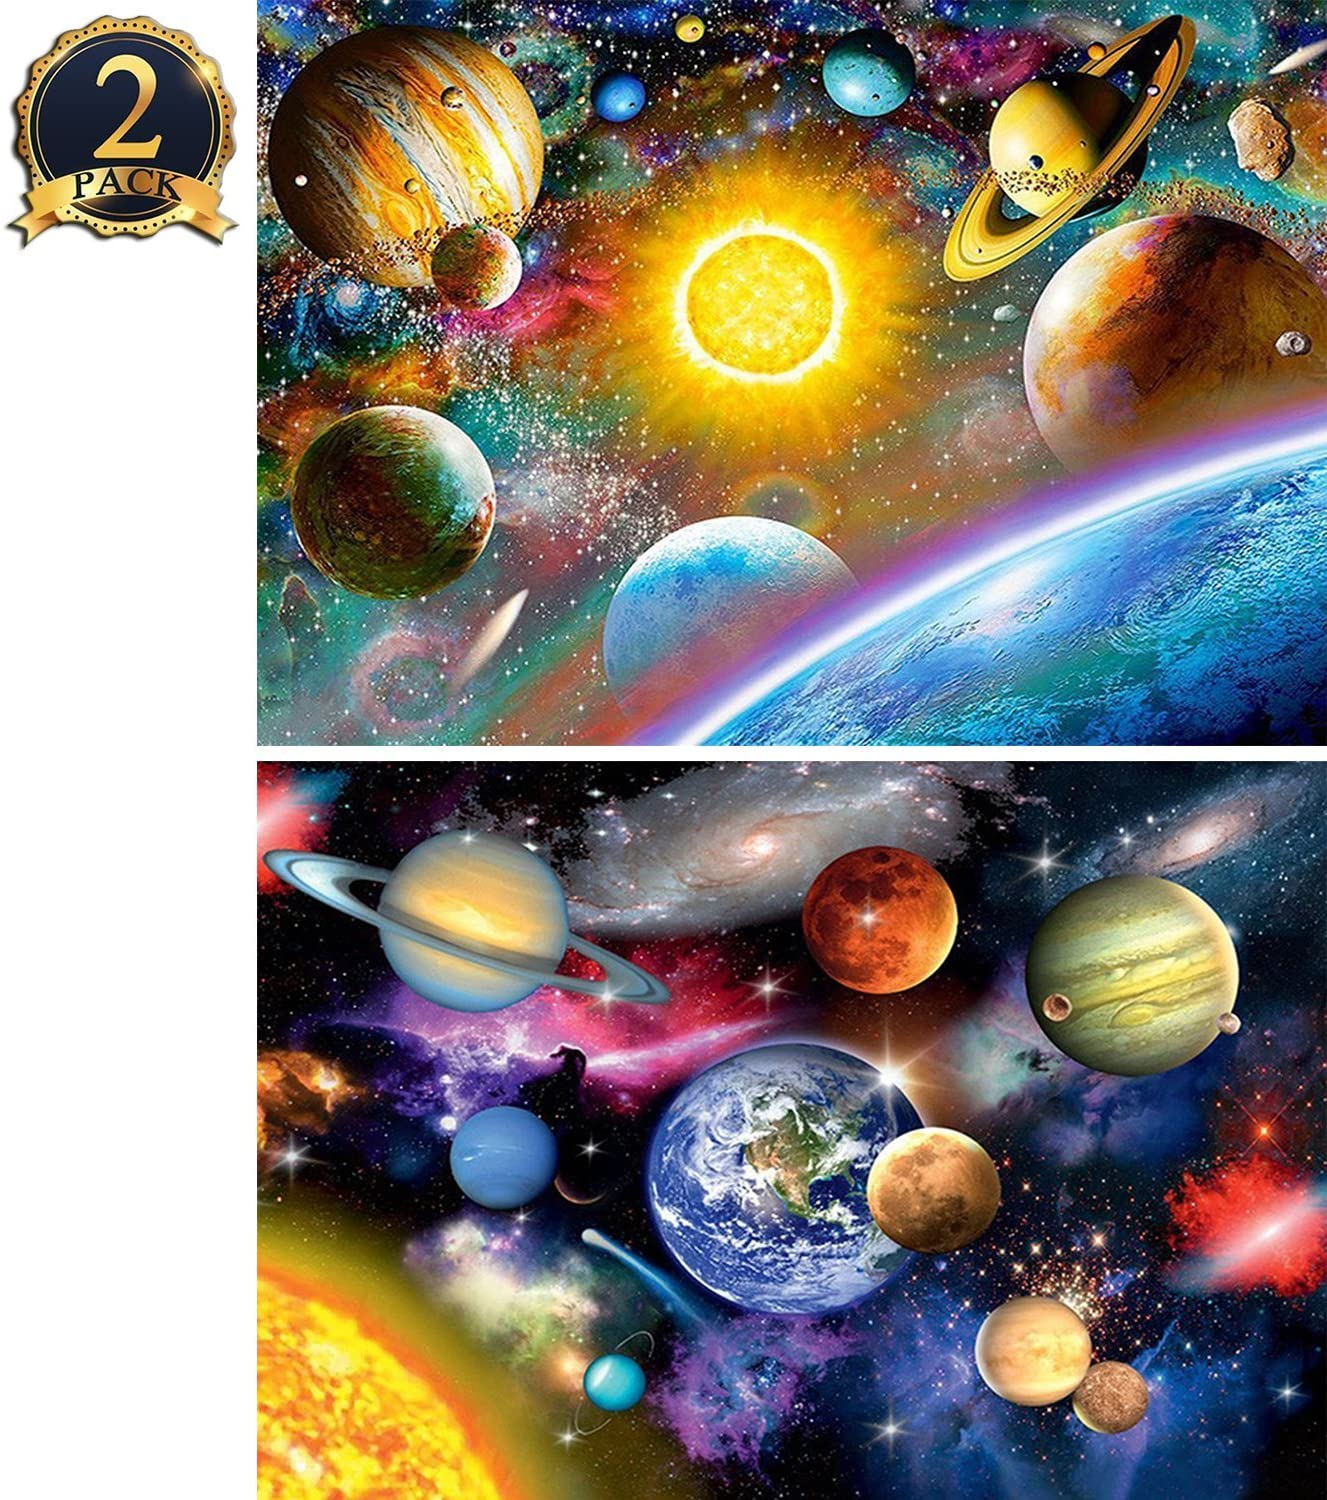 5D Diamond Painting Kit DIY Full Drill Planet and Universe Arts Crafts 2 Pack by Yomiie, Solar System (12x16inch/30x40cm) & Space Stars (12x16inch/30x40cm) a001